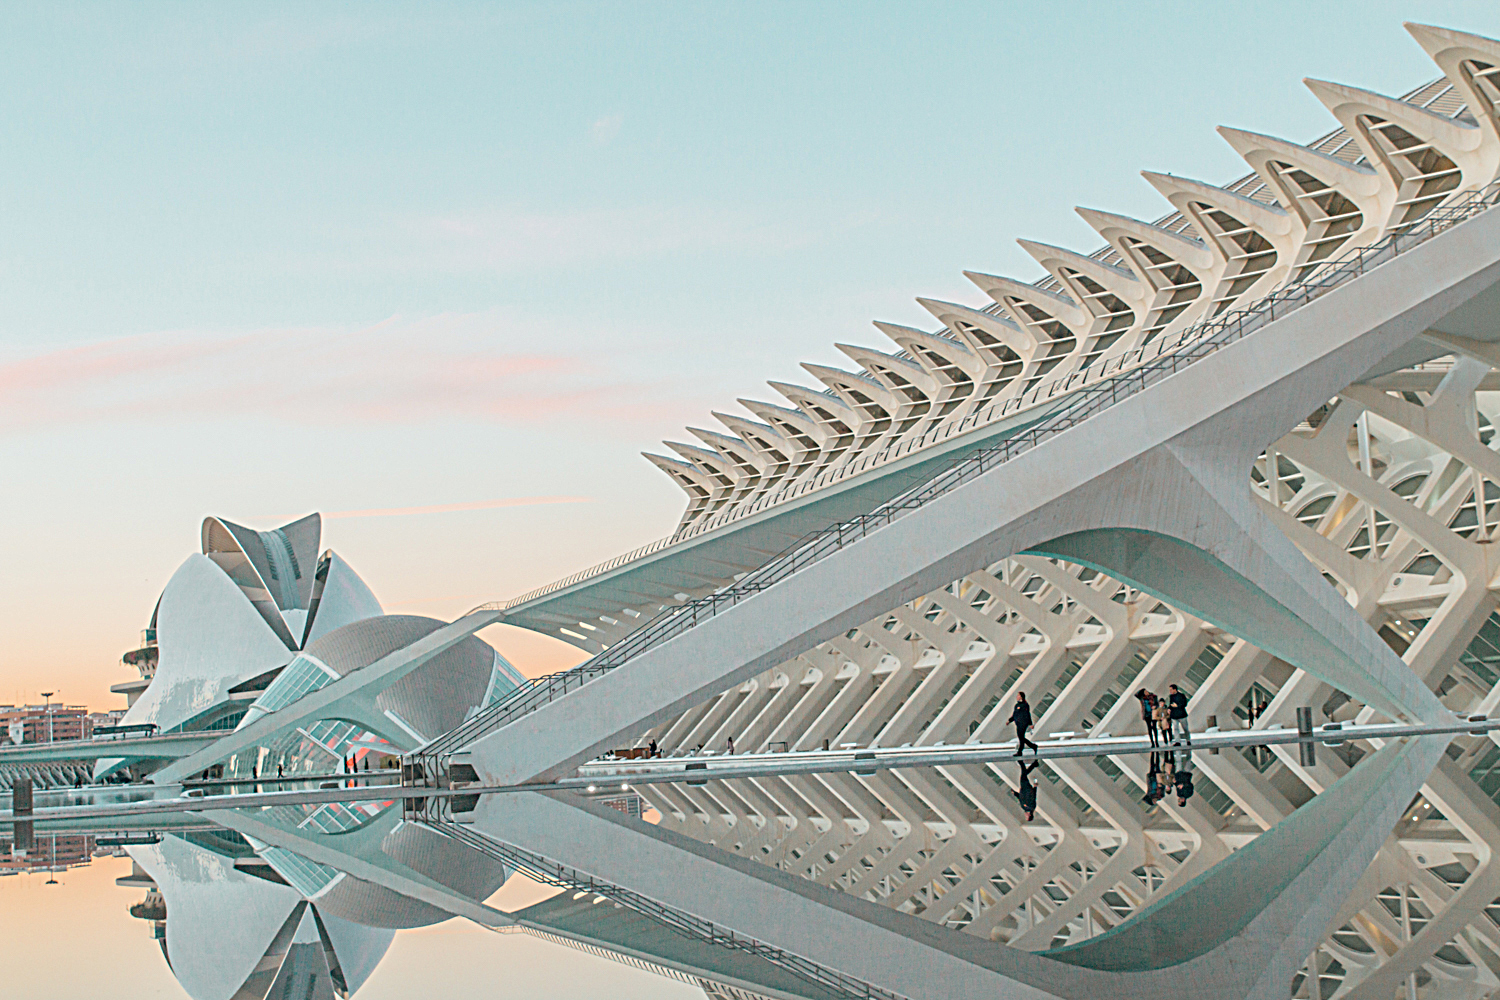 Top touristic spots Valencia, Valencia must see touristic locations